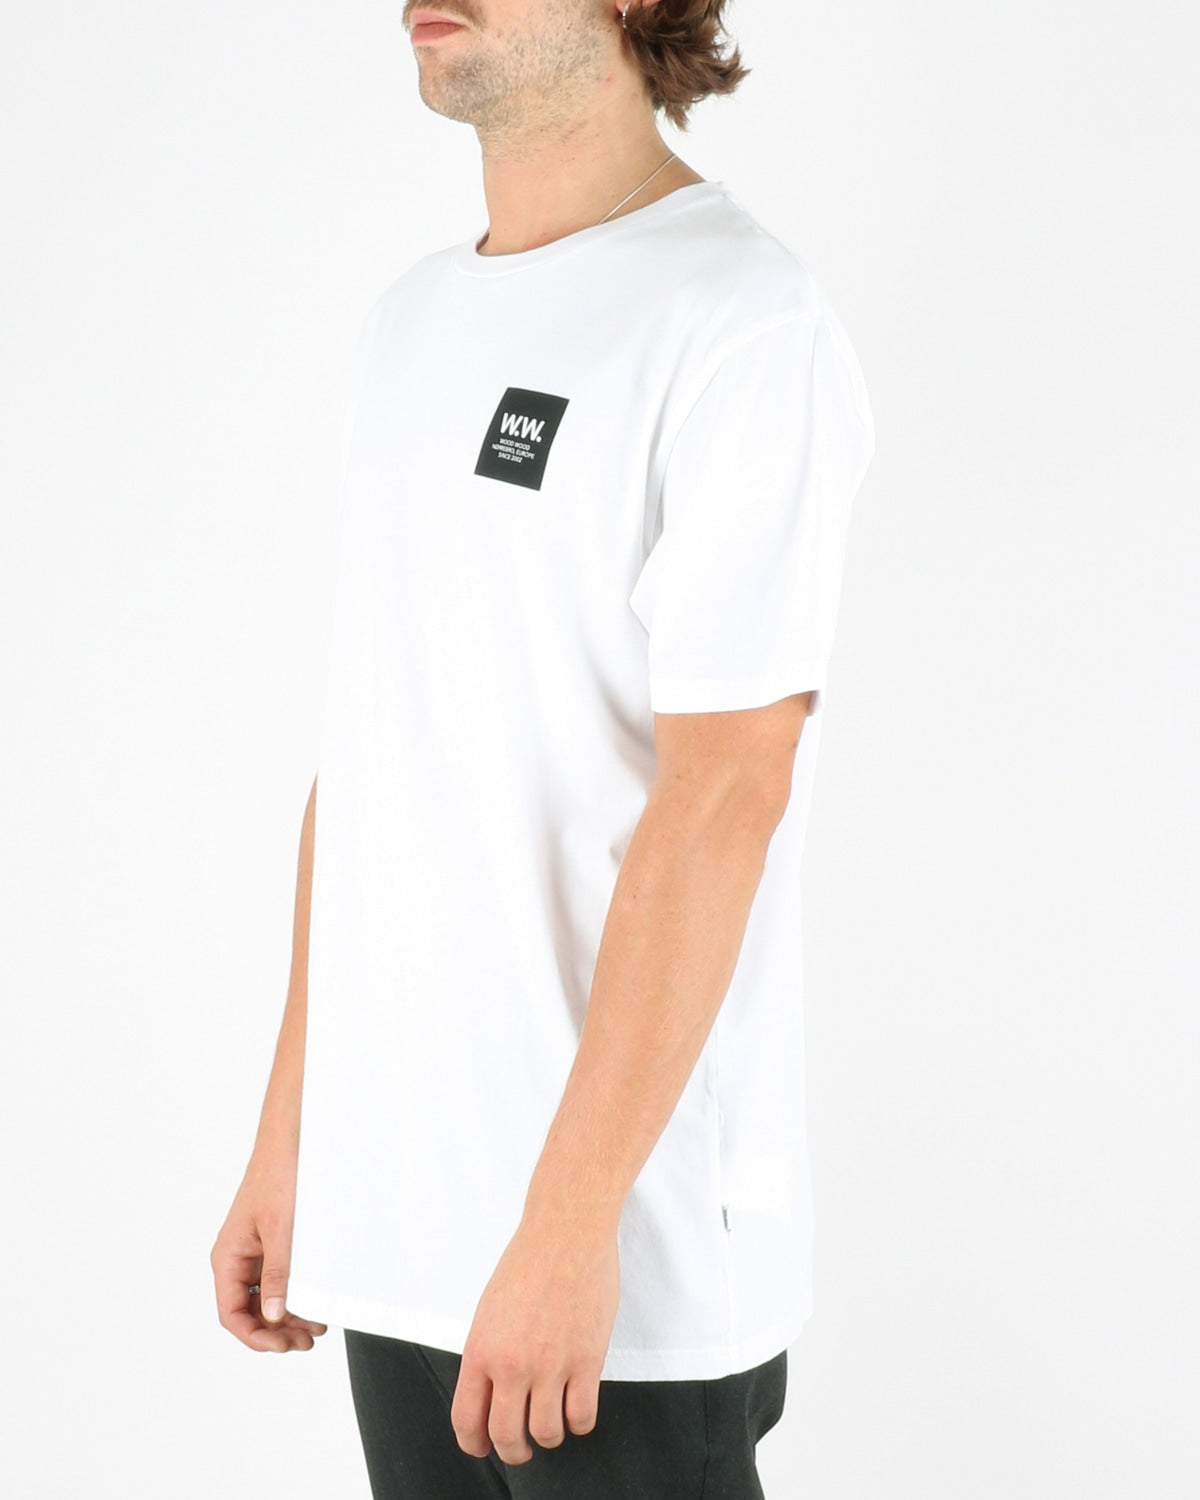 wood wood_ww box t-shirt_bright white_2_4